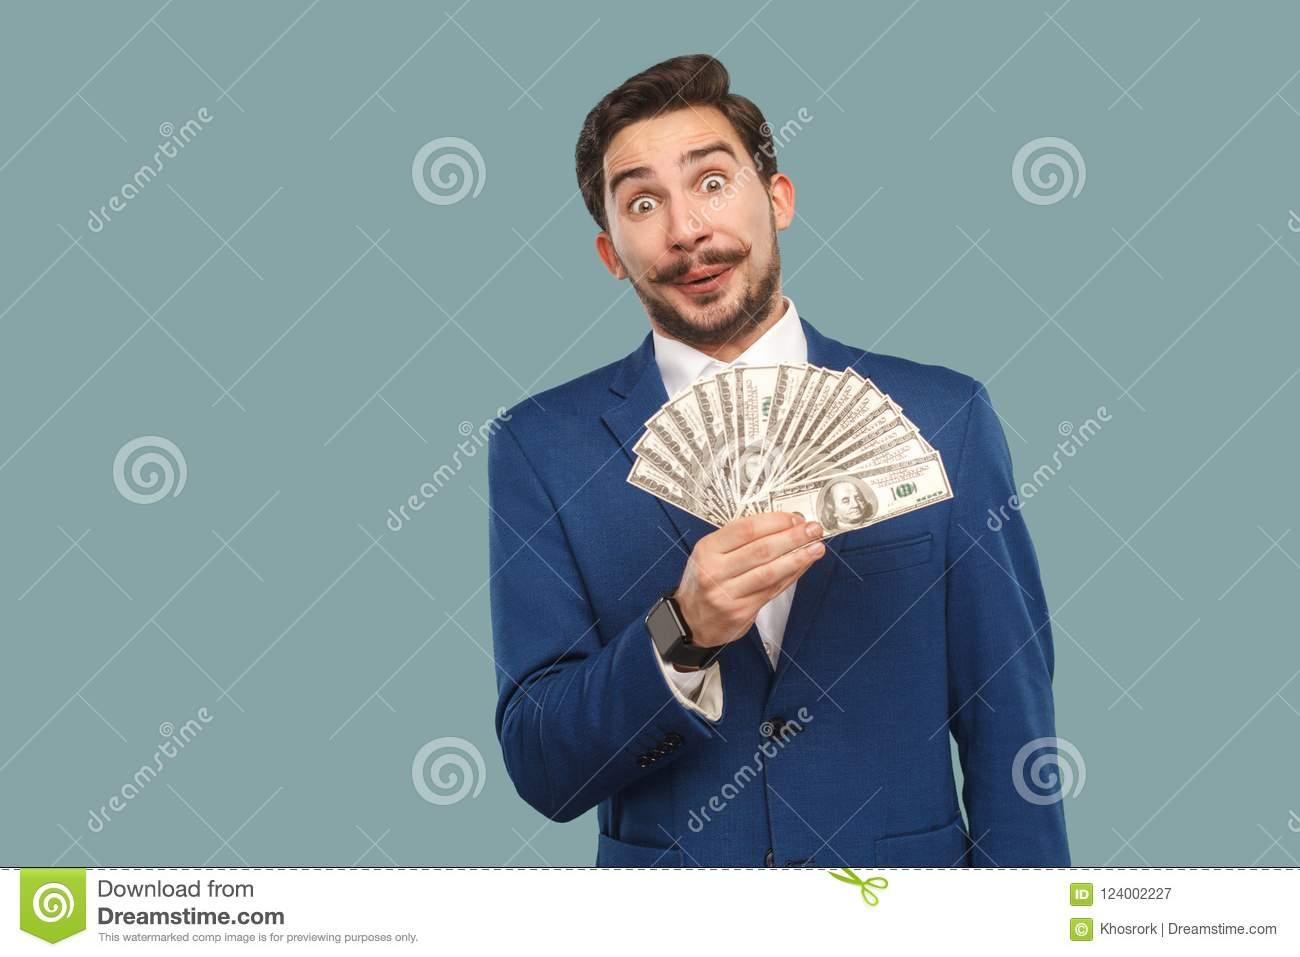 Handsome businessman in blue jacket standing and holding many do